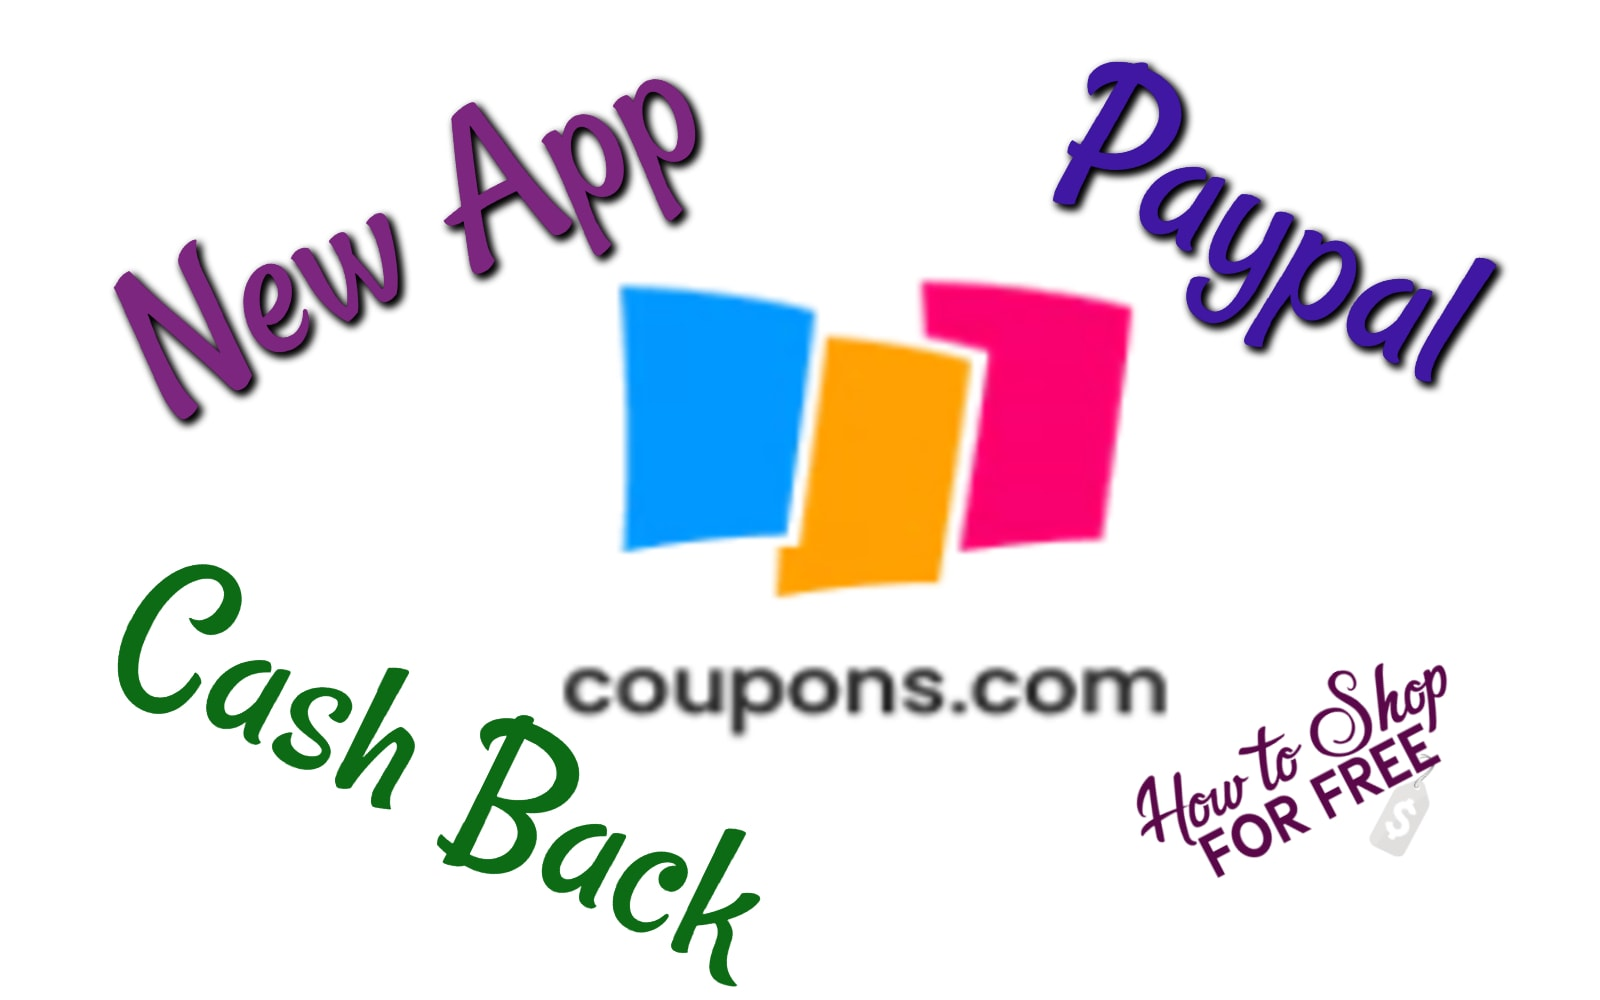 New Coupons Com App Update How To Shop For Free With Kathy Spencer